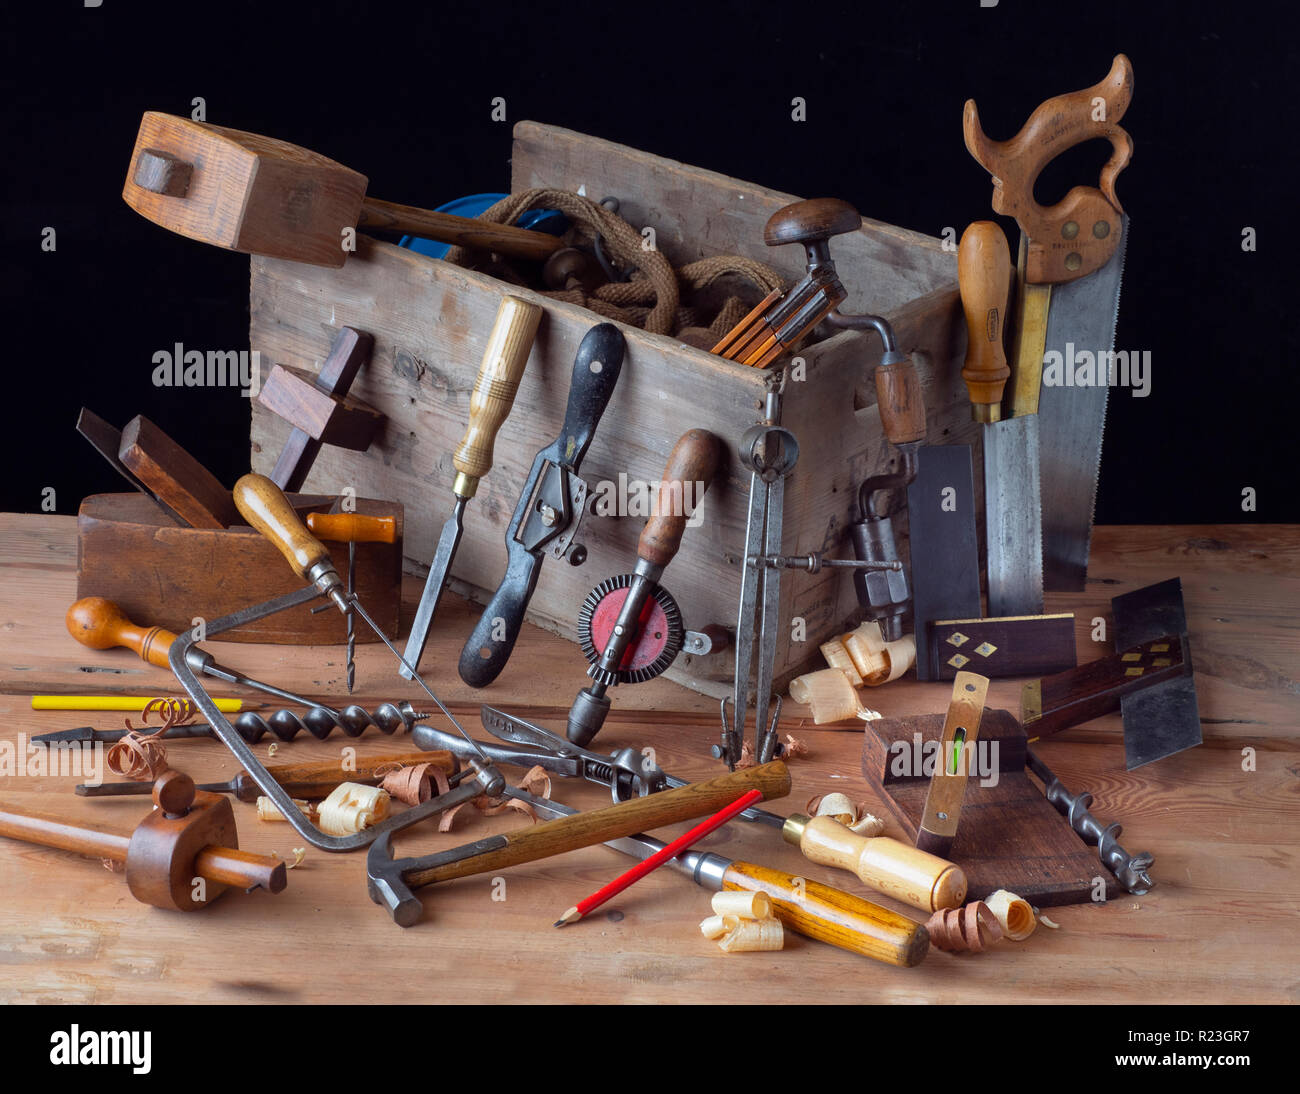 Carpenters tools on woodworking bench - Stock Image